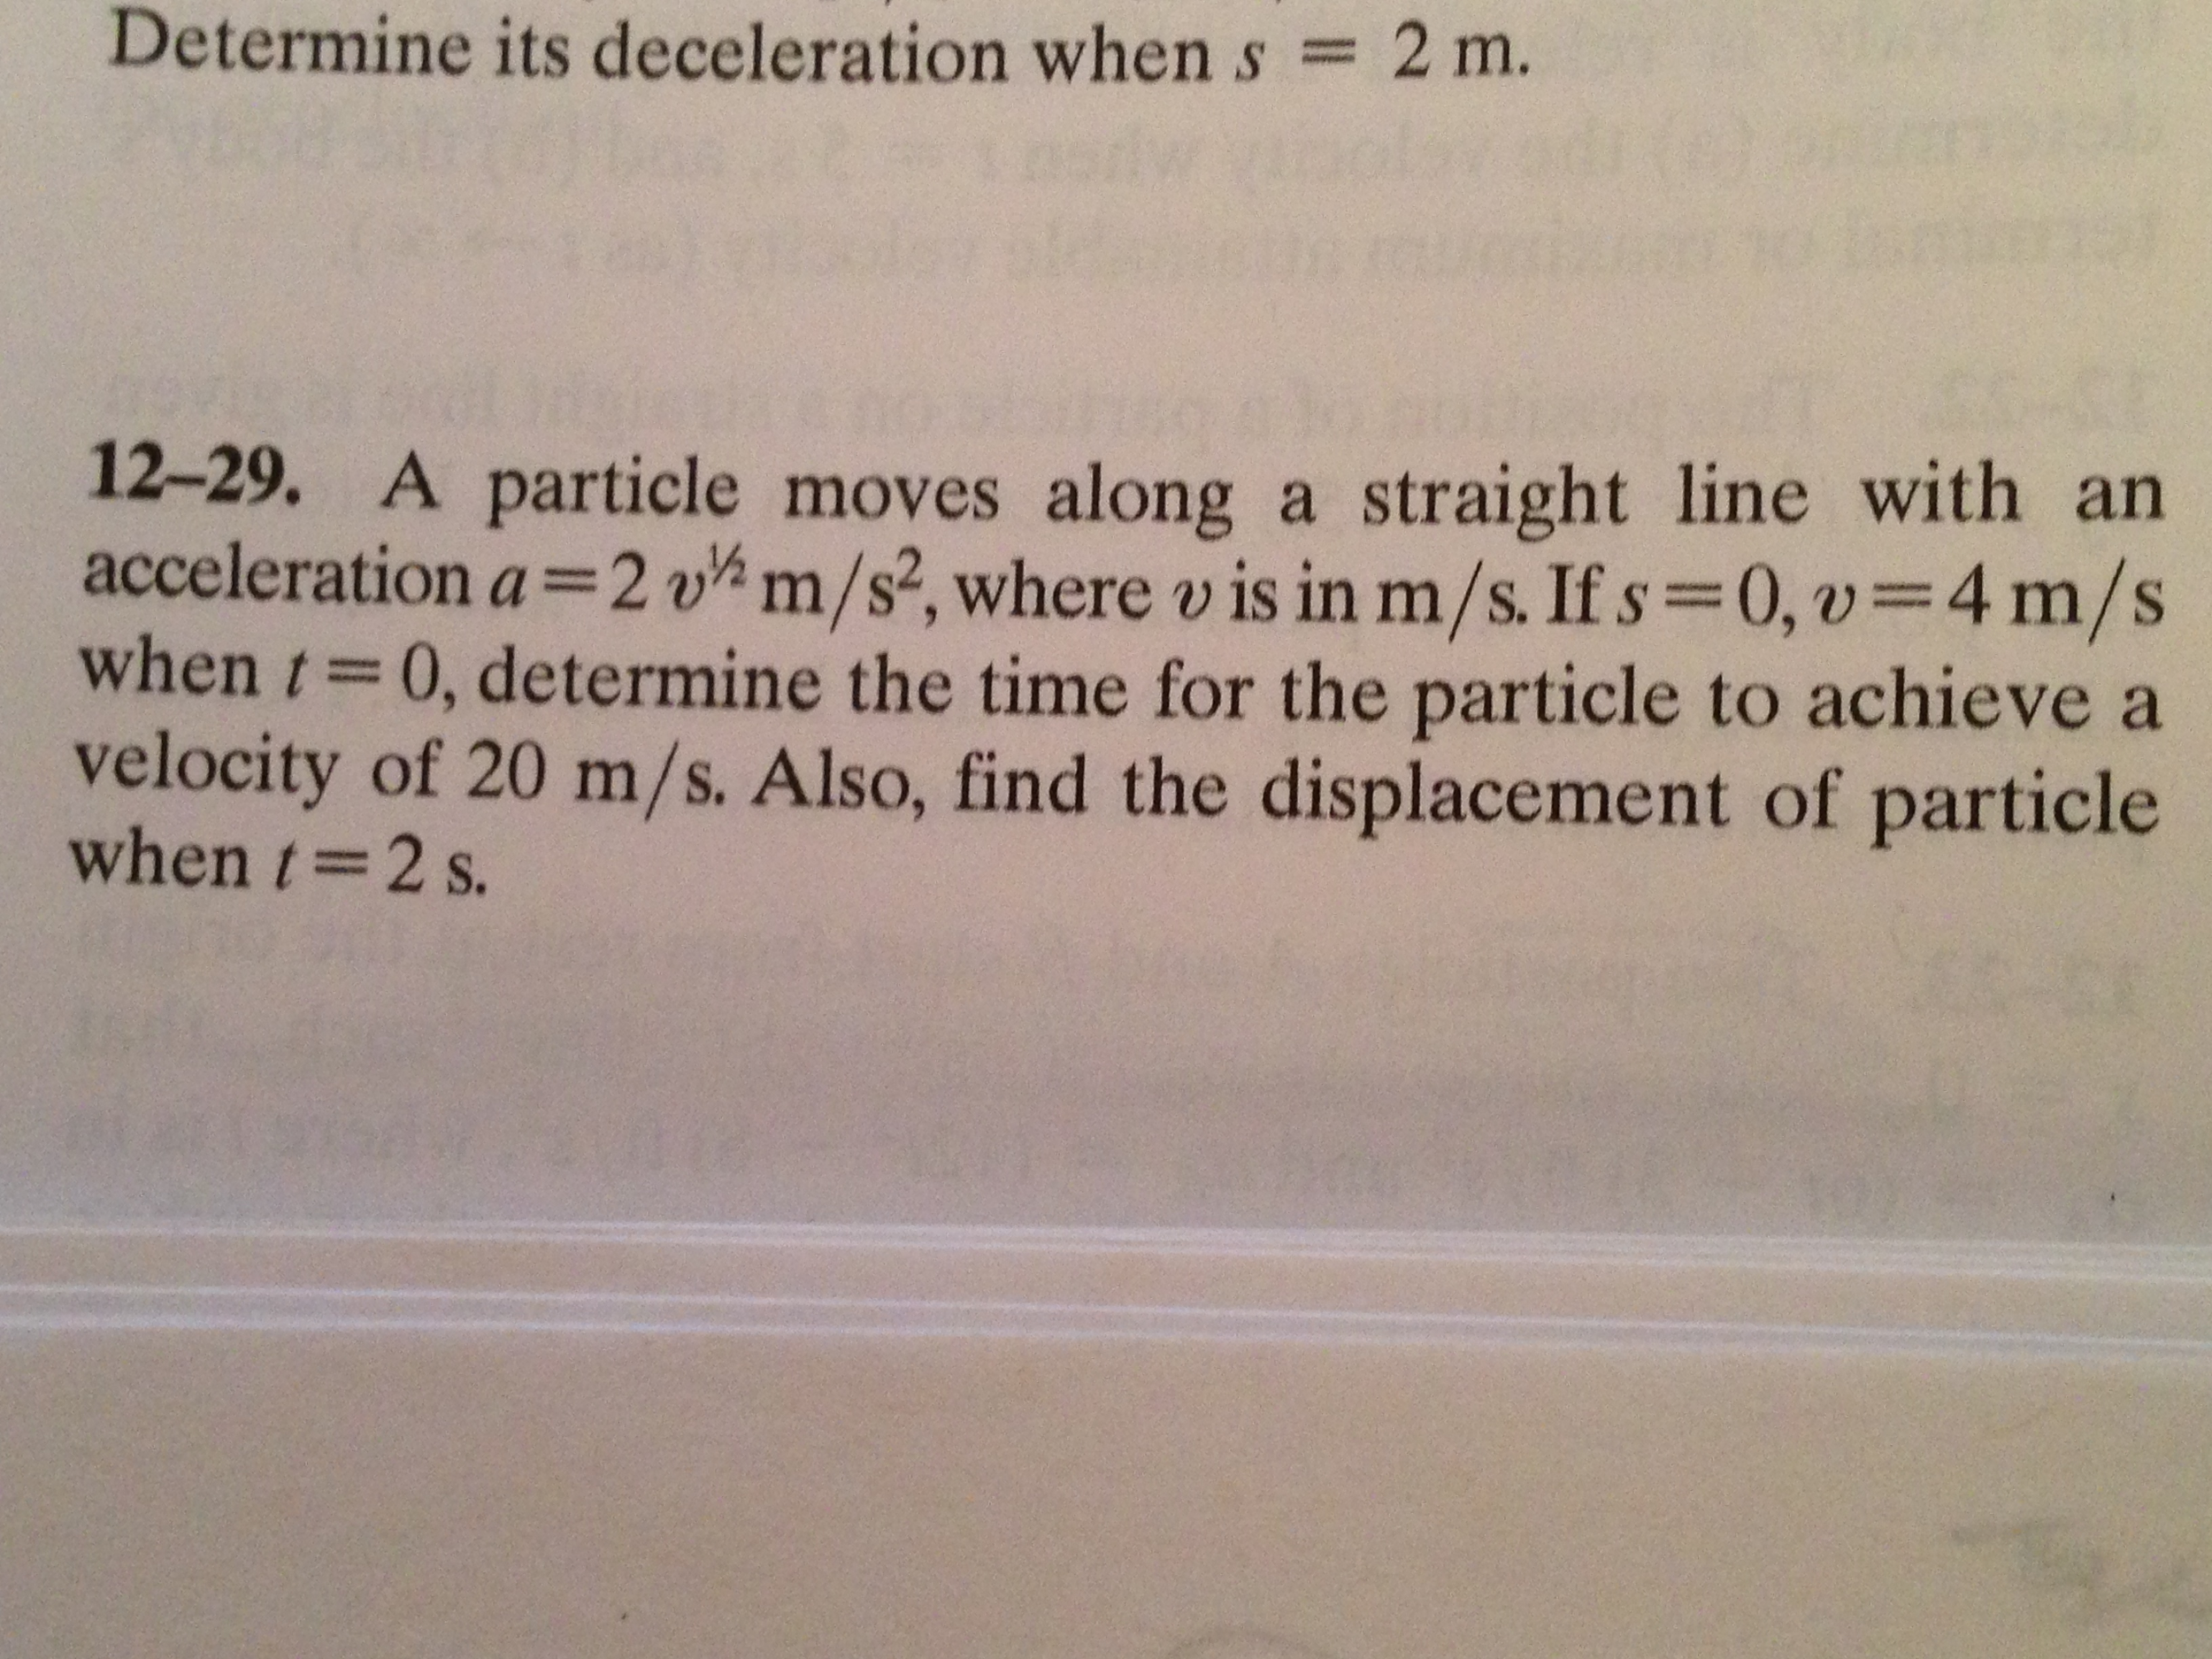 Determine its deceleration when s = 2 m. A partic